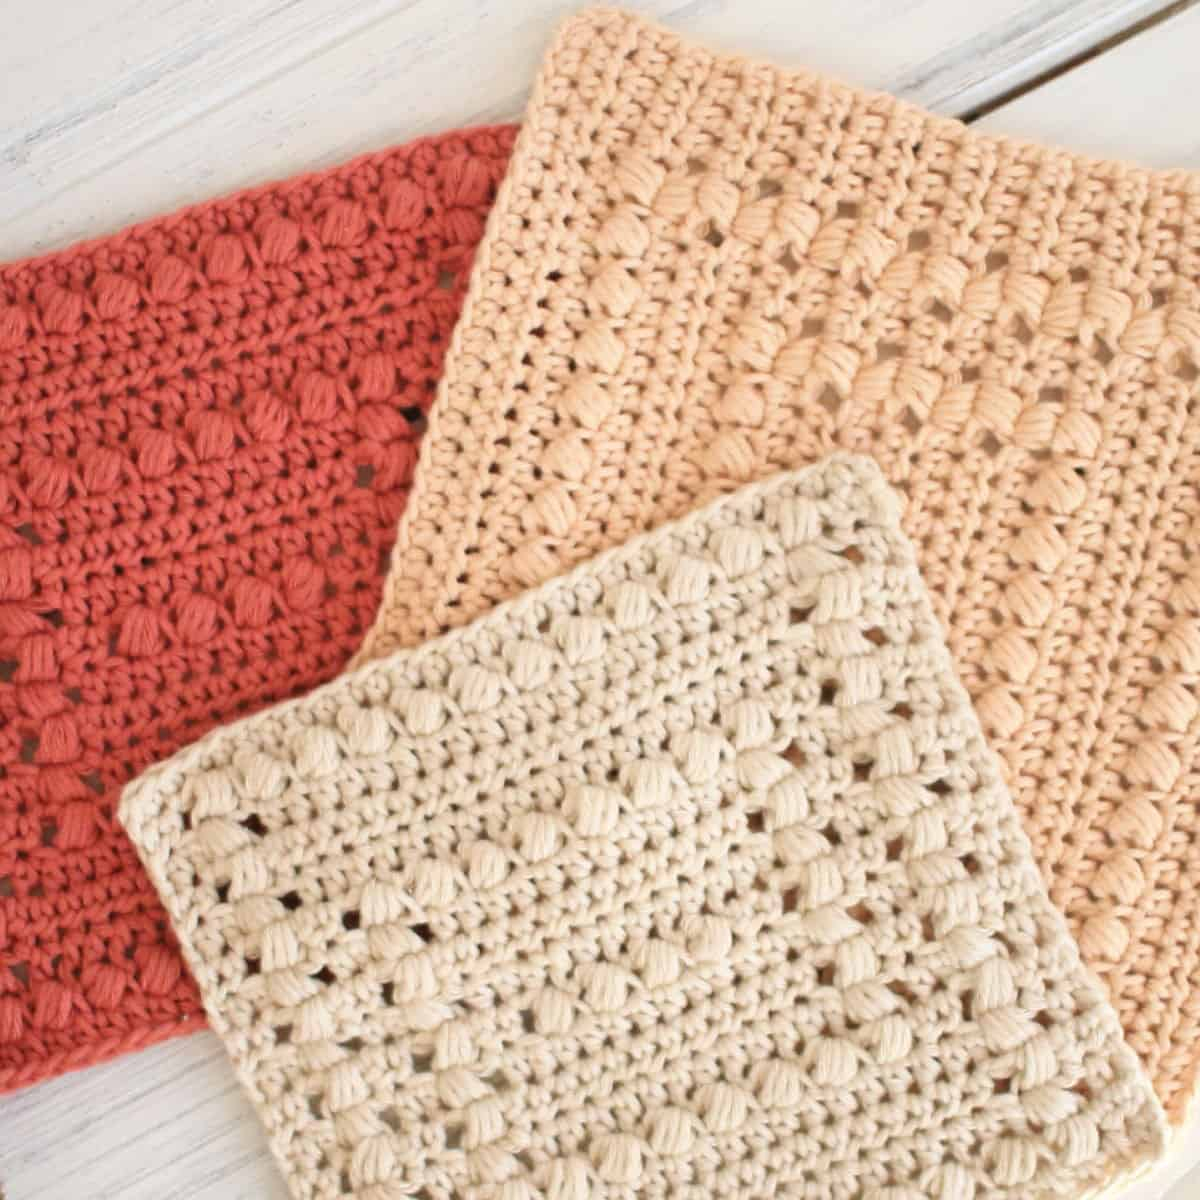 Quick and Simple Dish Cloth Crochet Pattern Crochet Dishcloth Patterns 2 Basin Hollow Sizes Crochet Life